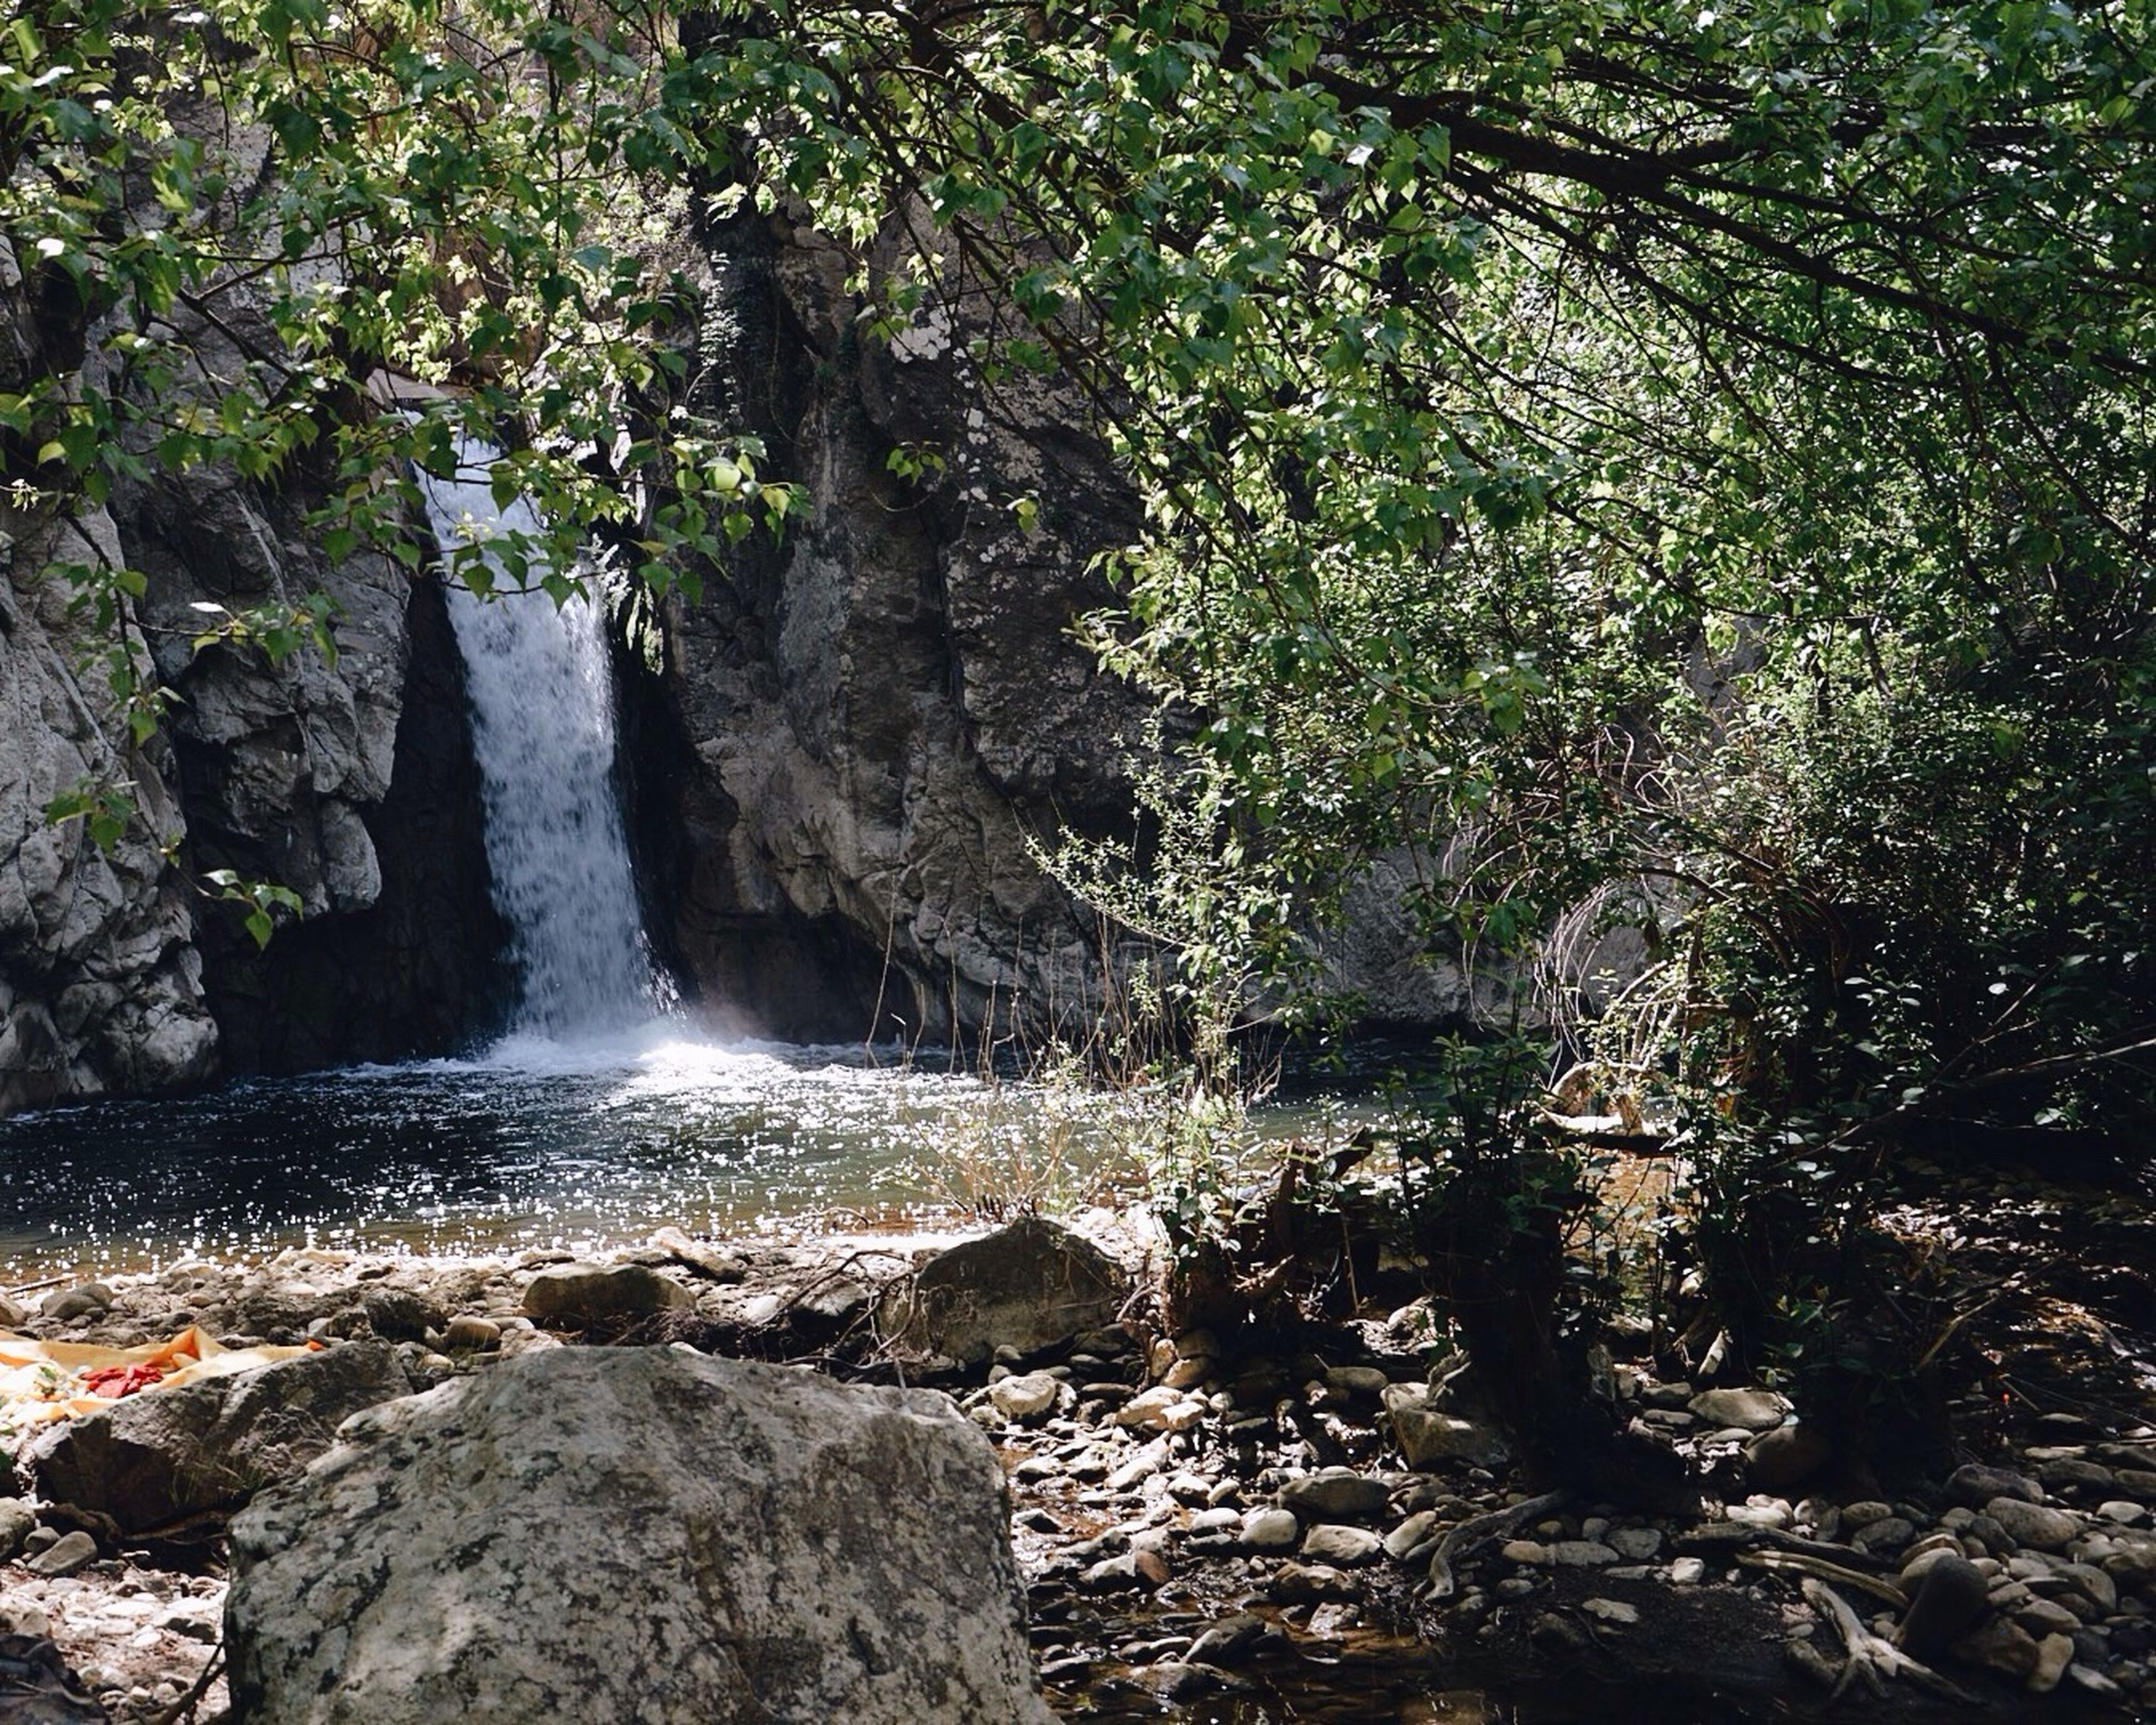 tree, forest, water, rock - object, waterfall, motion, flowing water, nature, beauty in nature, flowing, scenics, long exposure, growth, tranquility, rock, rock formation, day, tranquil scene, outdoors, stream